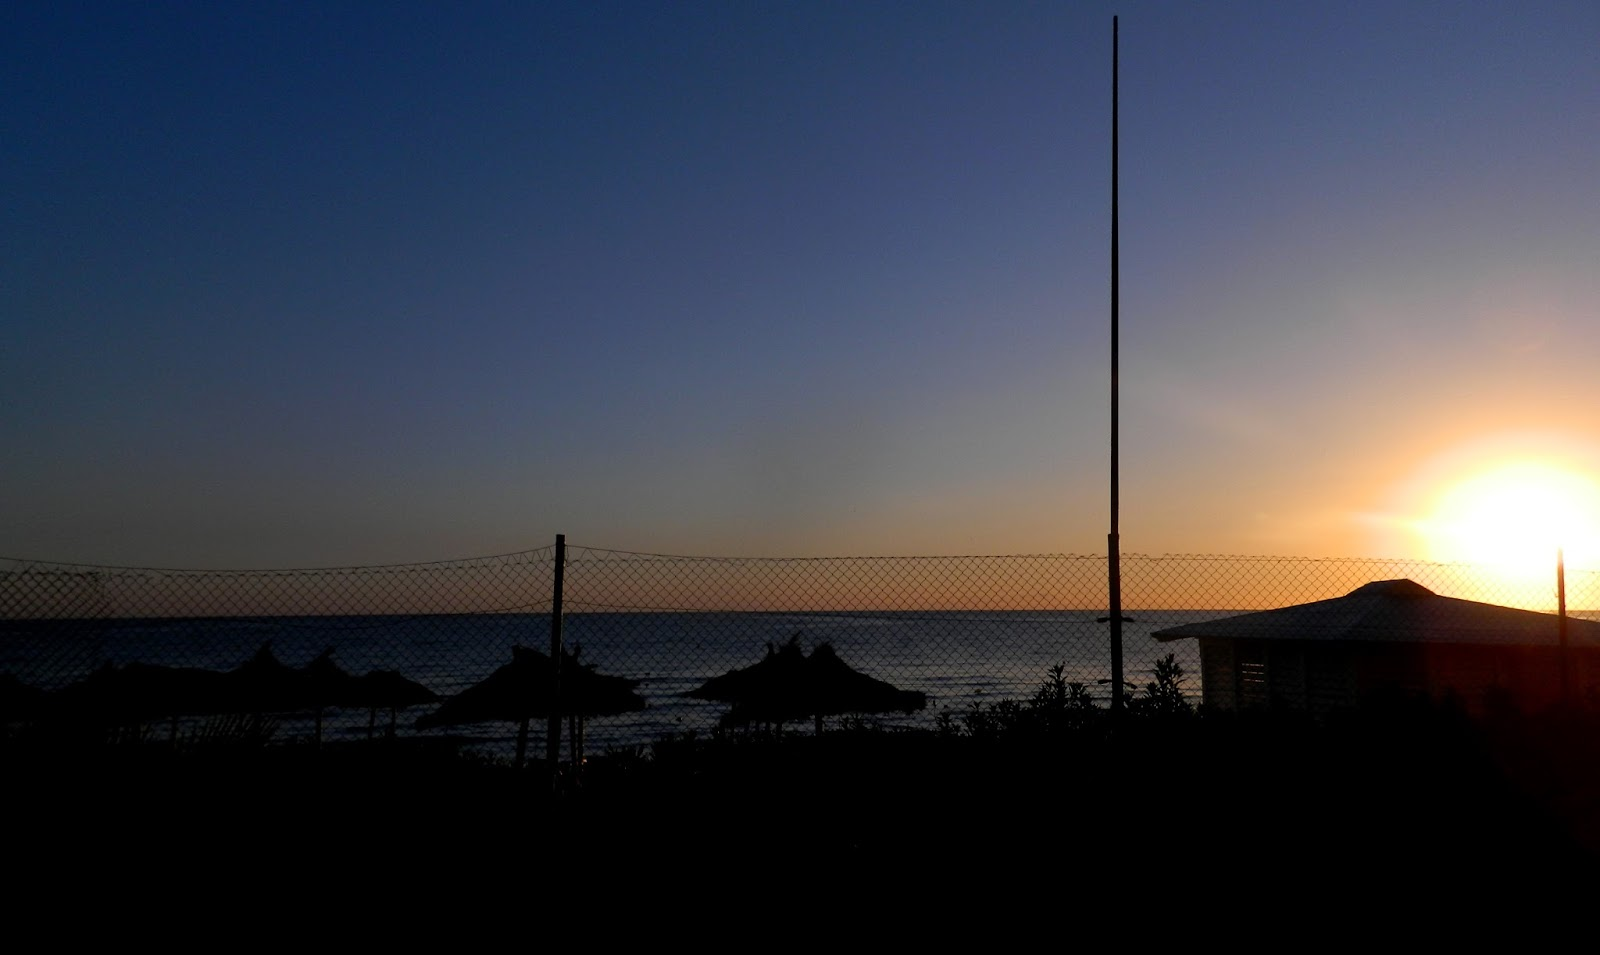 sunrise, Tunisia, Monastir